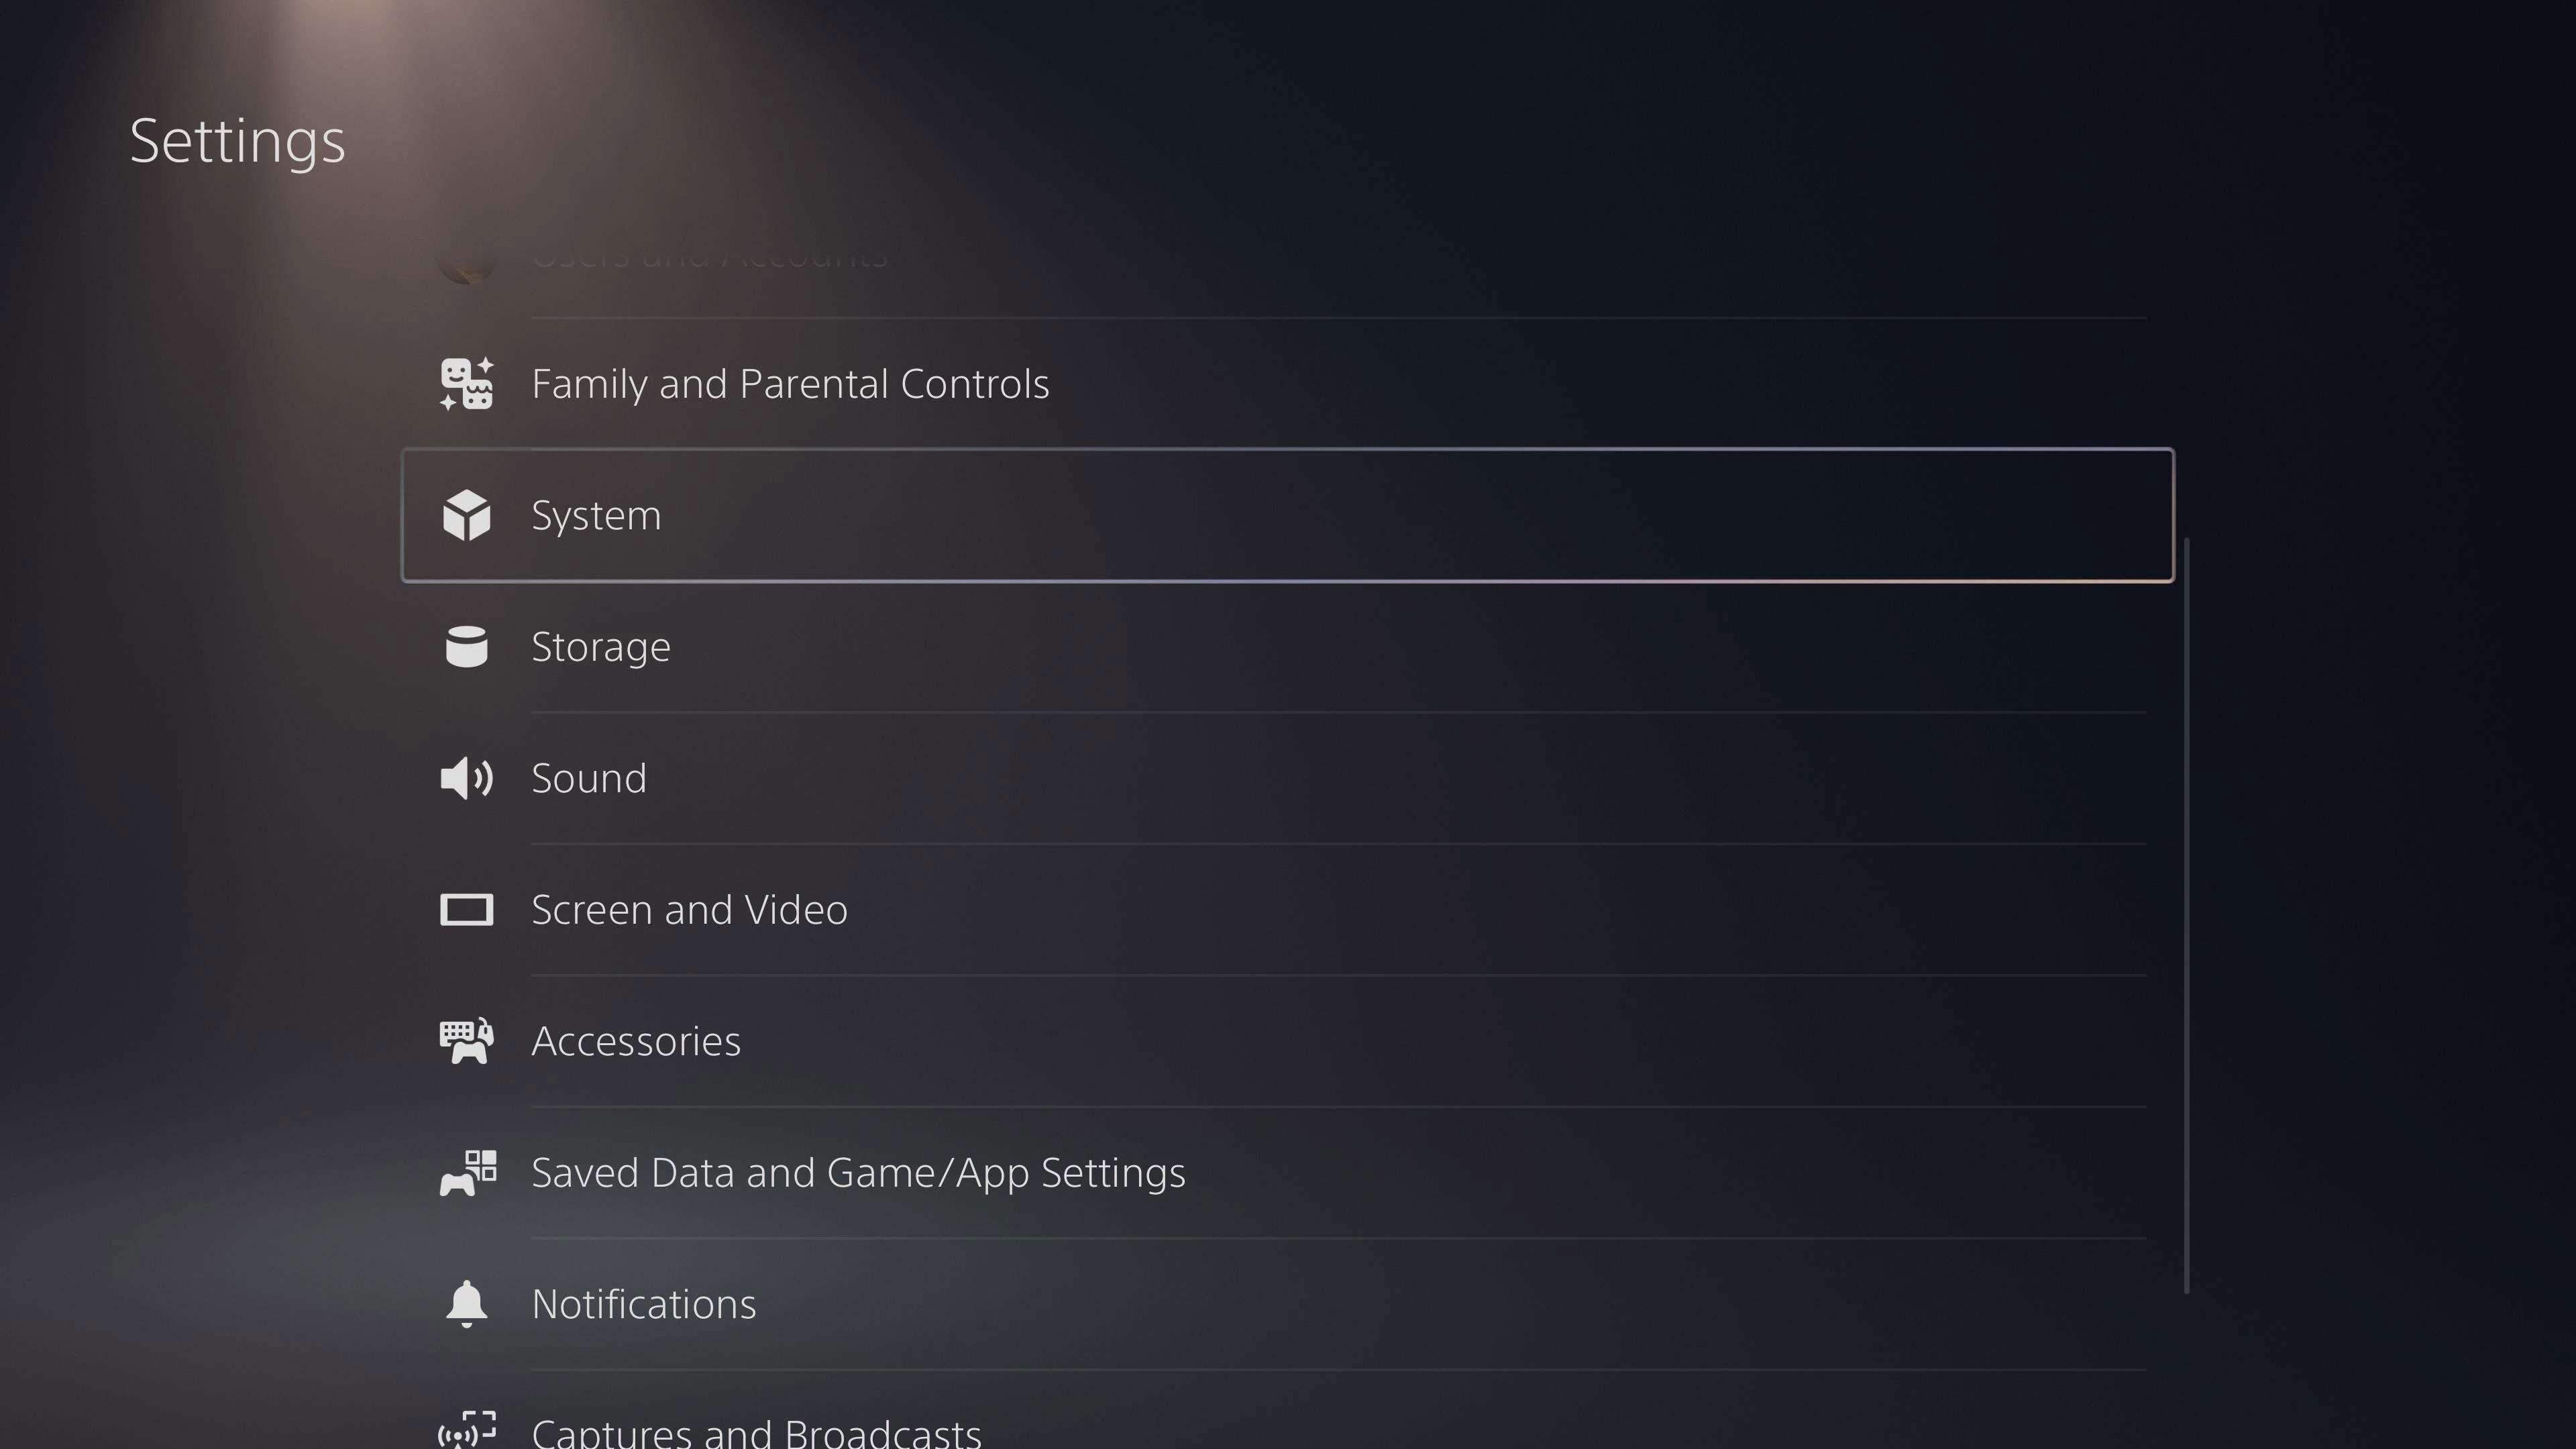 The System heading in PS5 settings